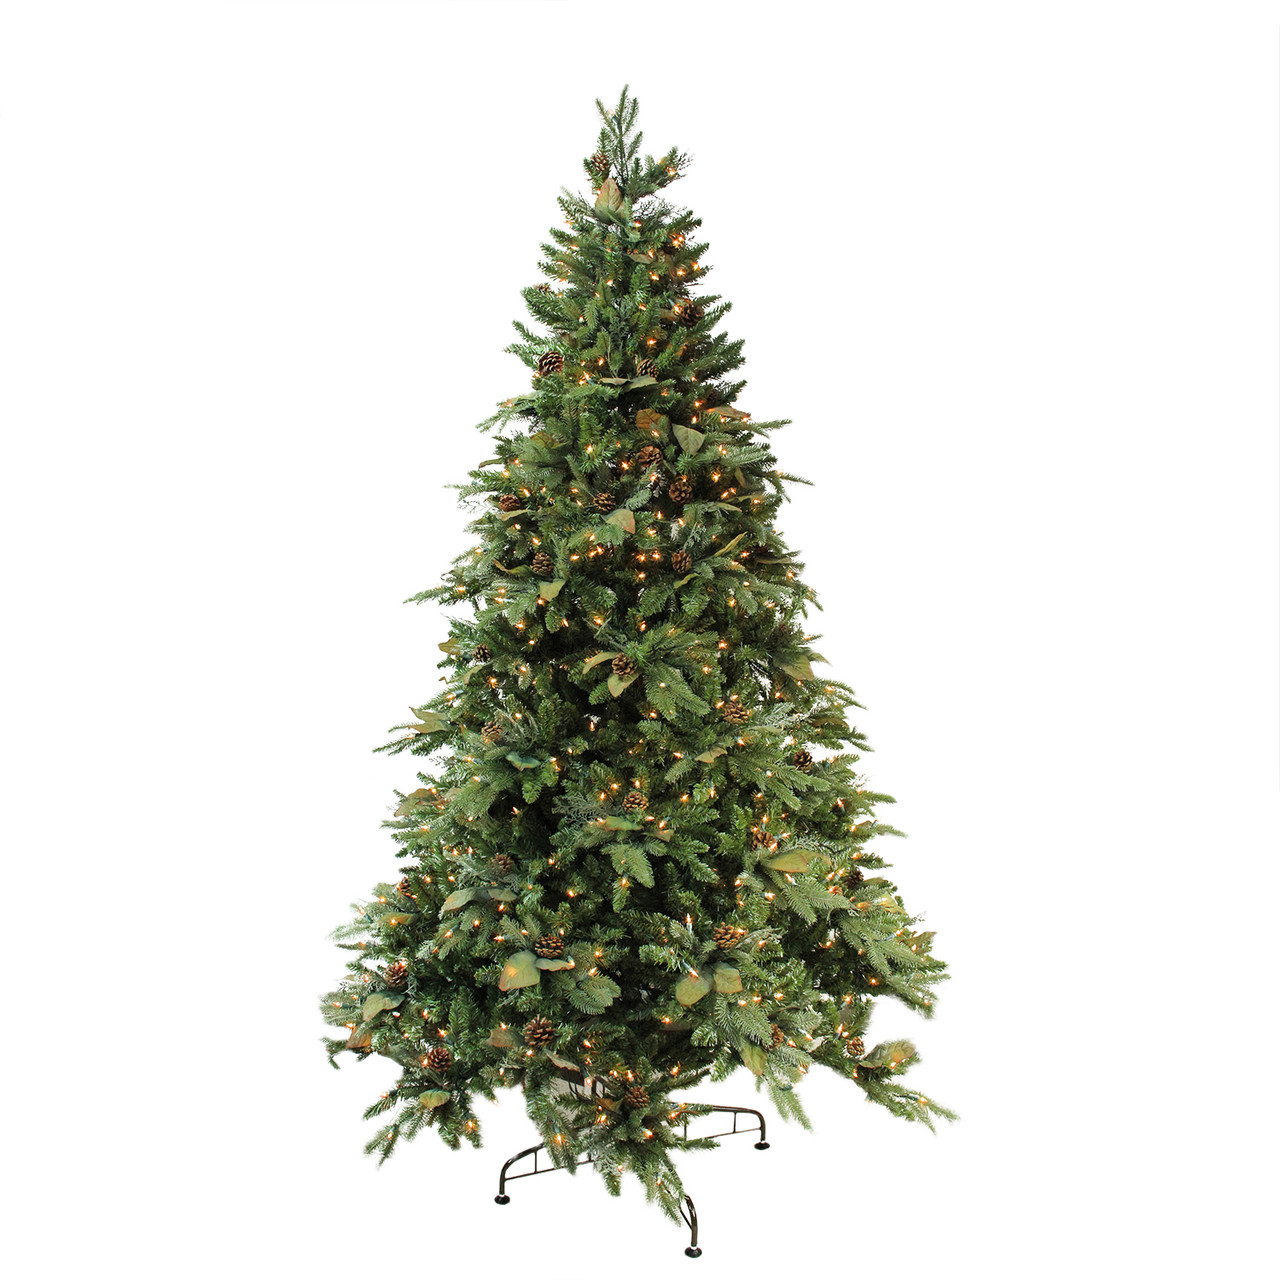 7 5 39 Green River Spruce Pre Lit Artificial Christmas Tree Clear Lights